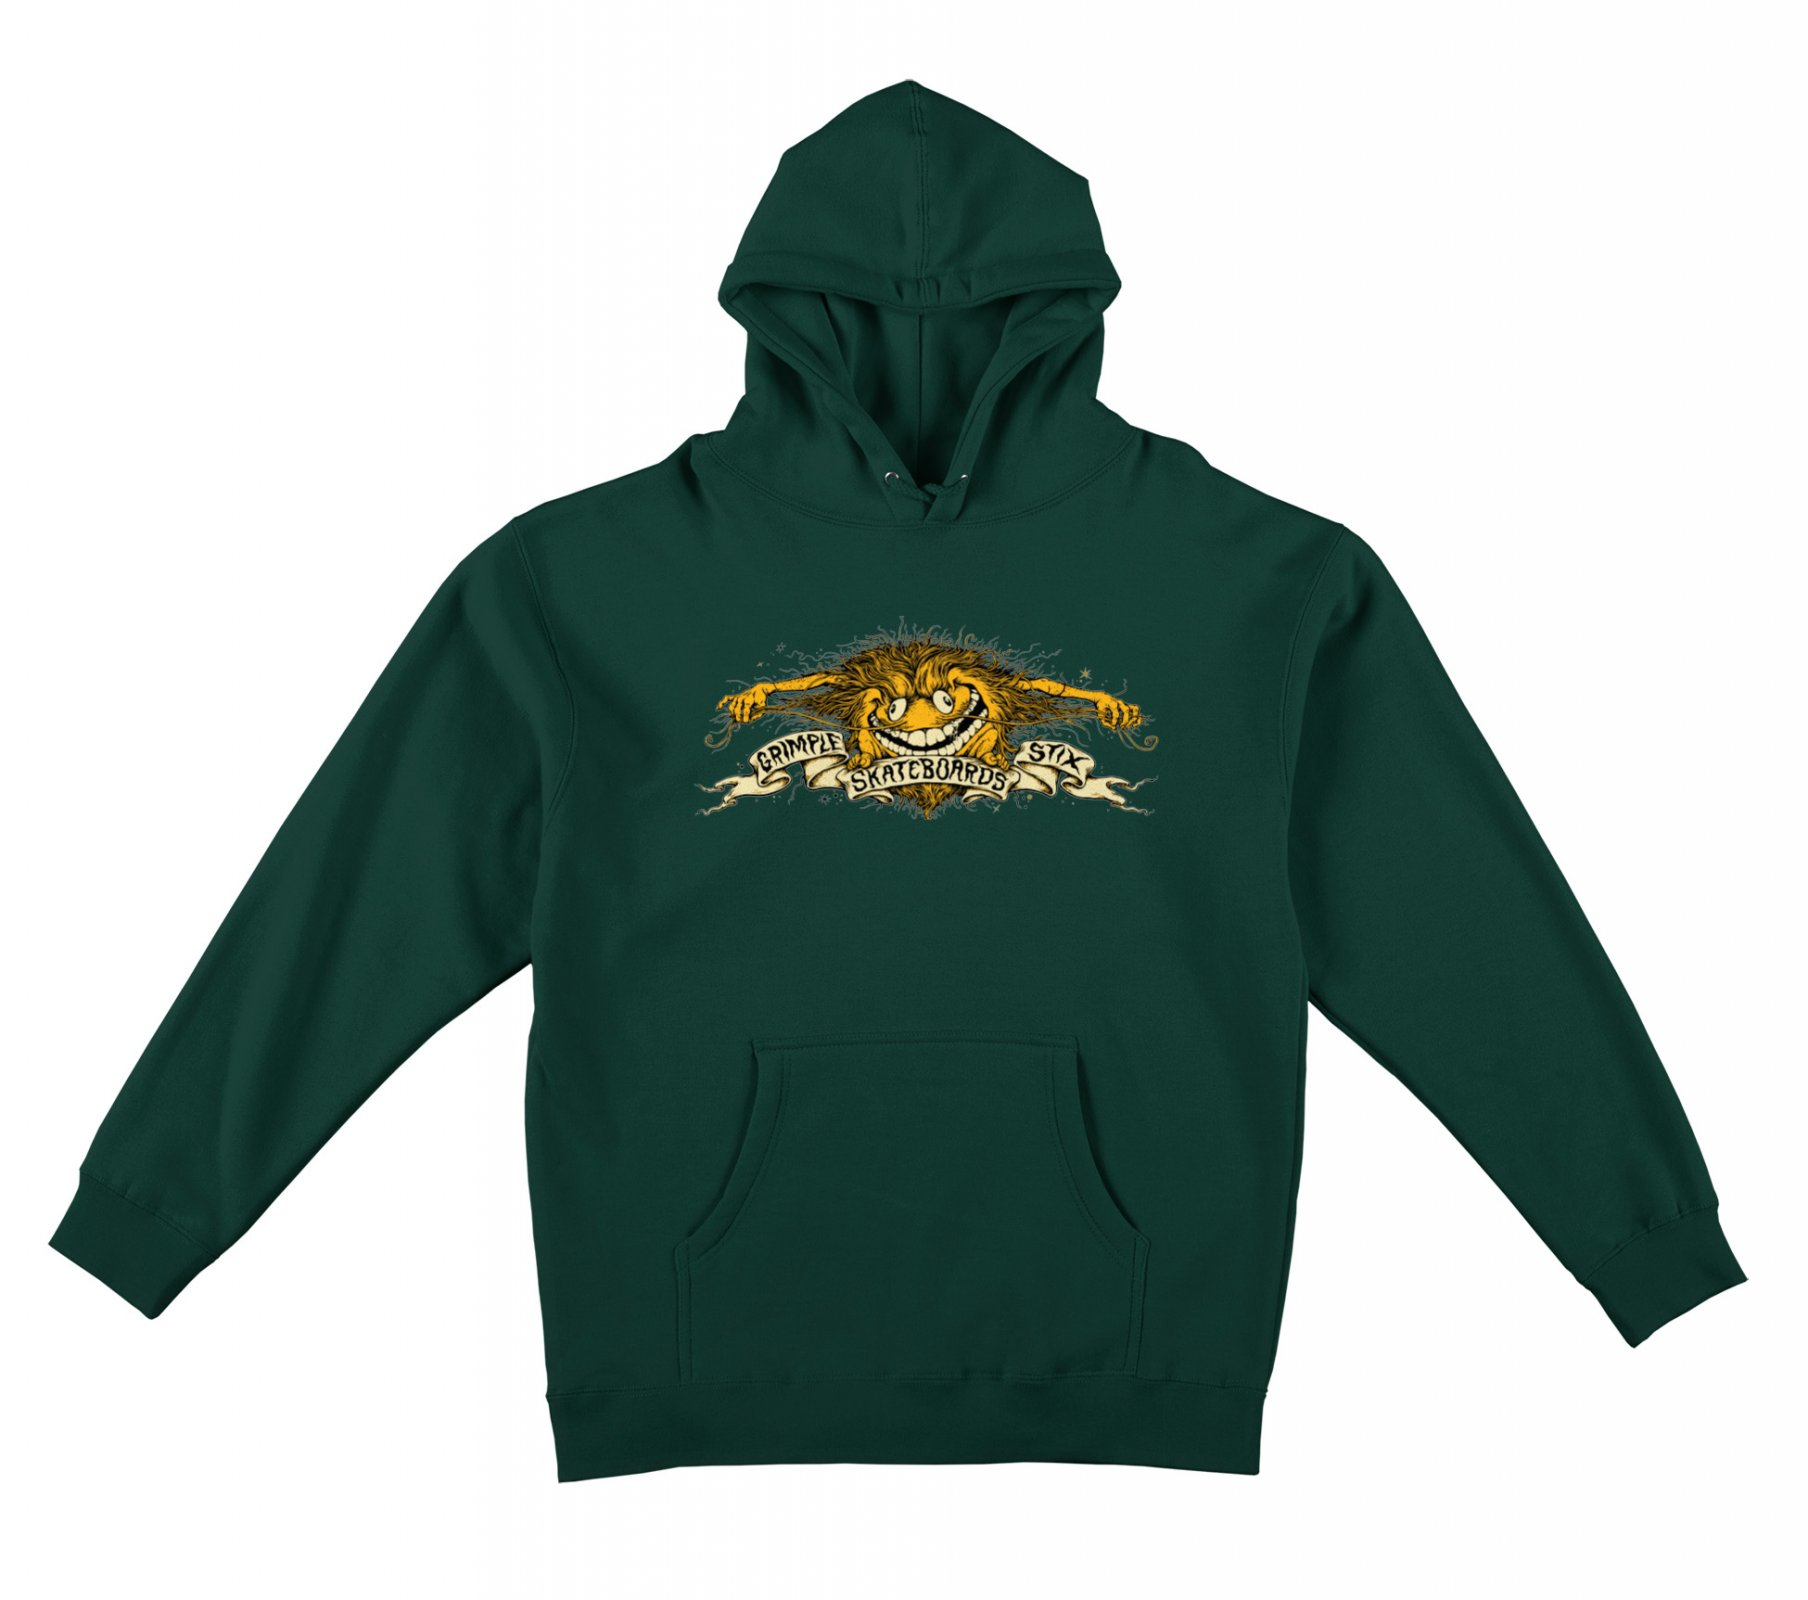 Anti Hero Grimple Stix Eagle Sweatshirt